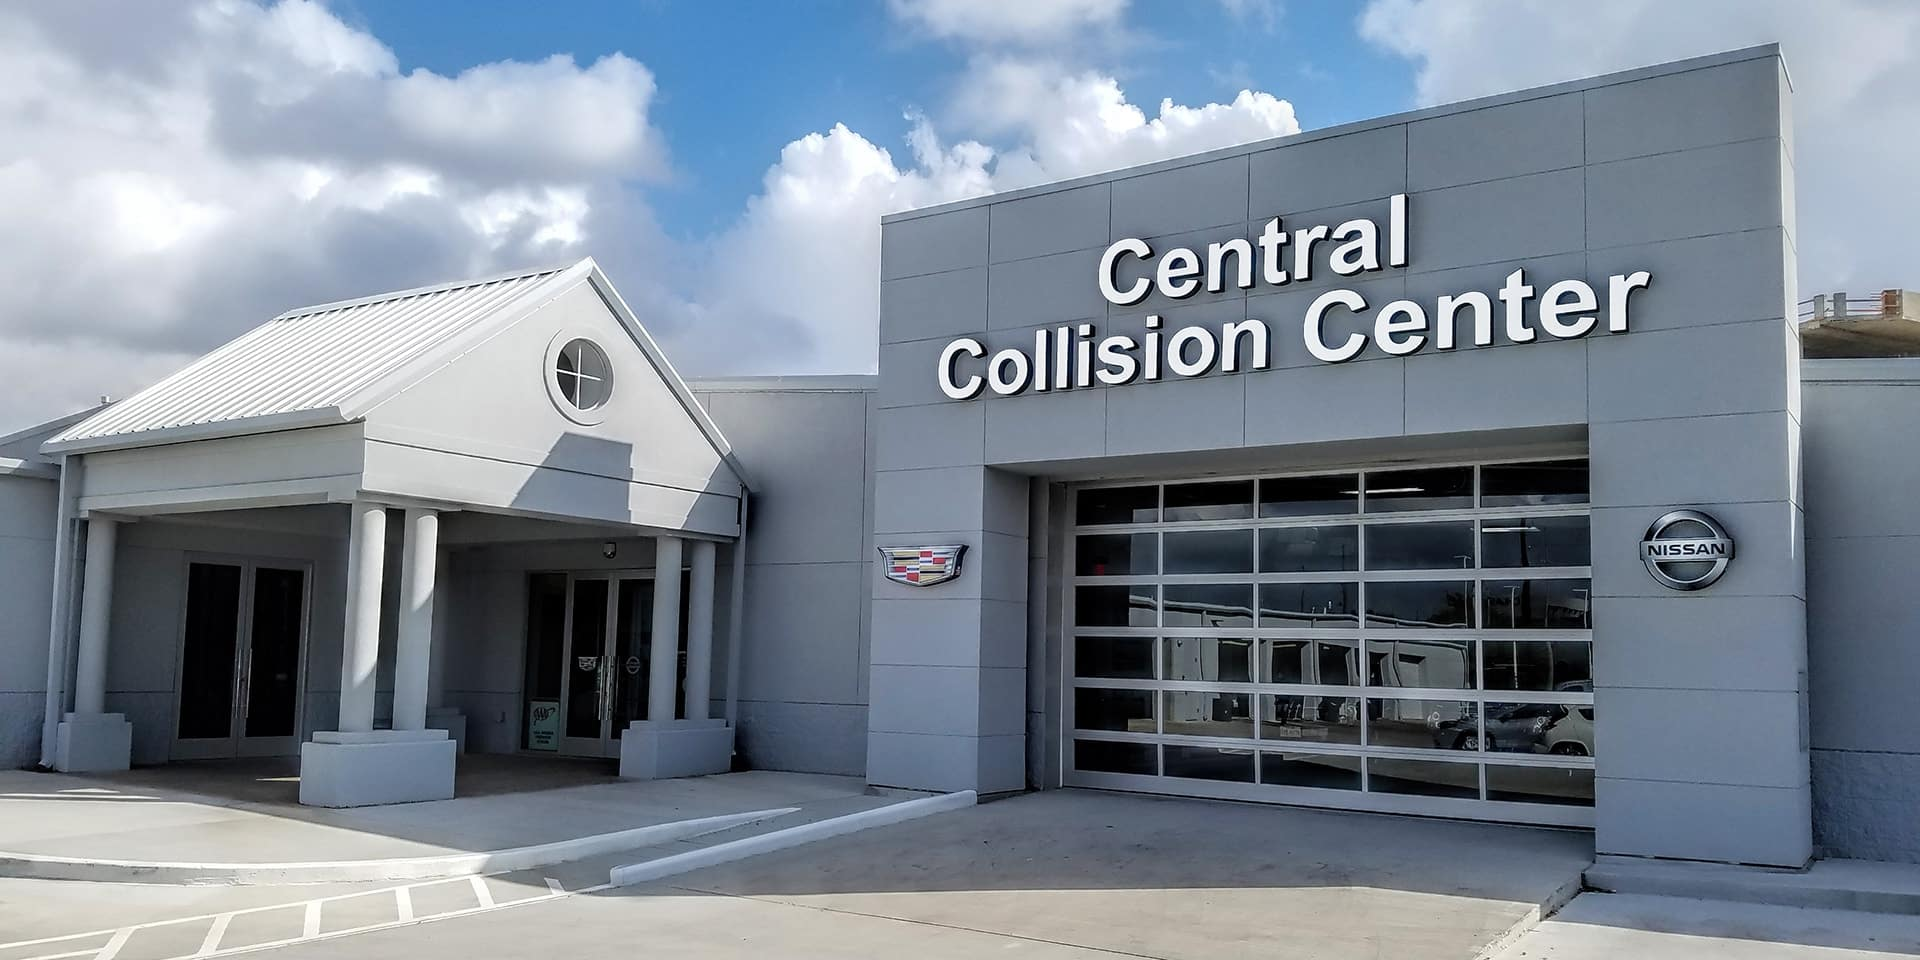 Central Collision Center